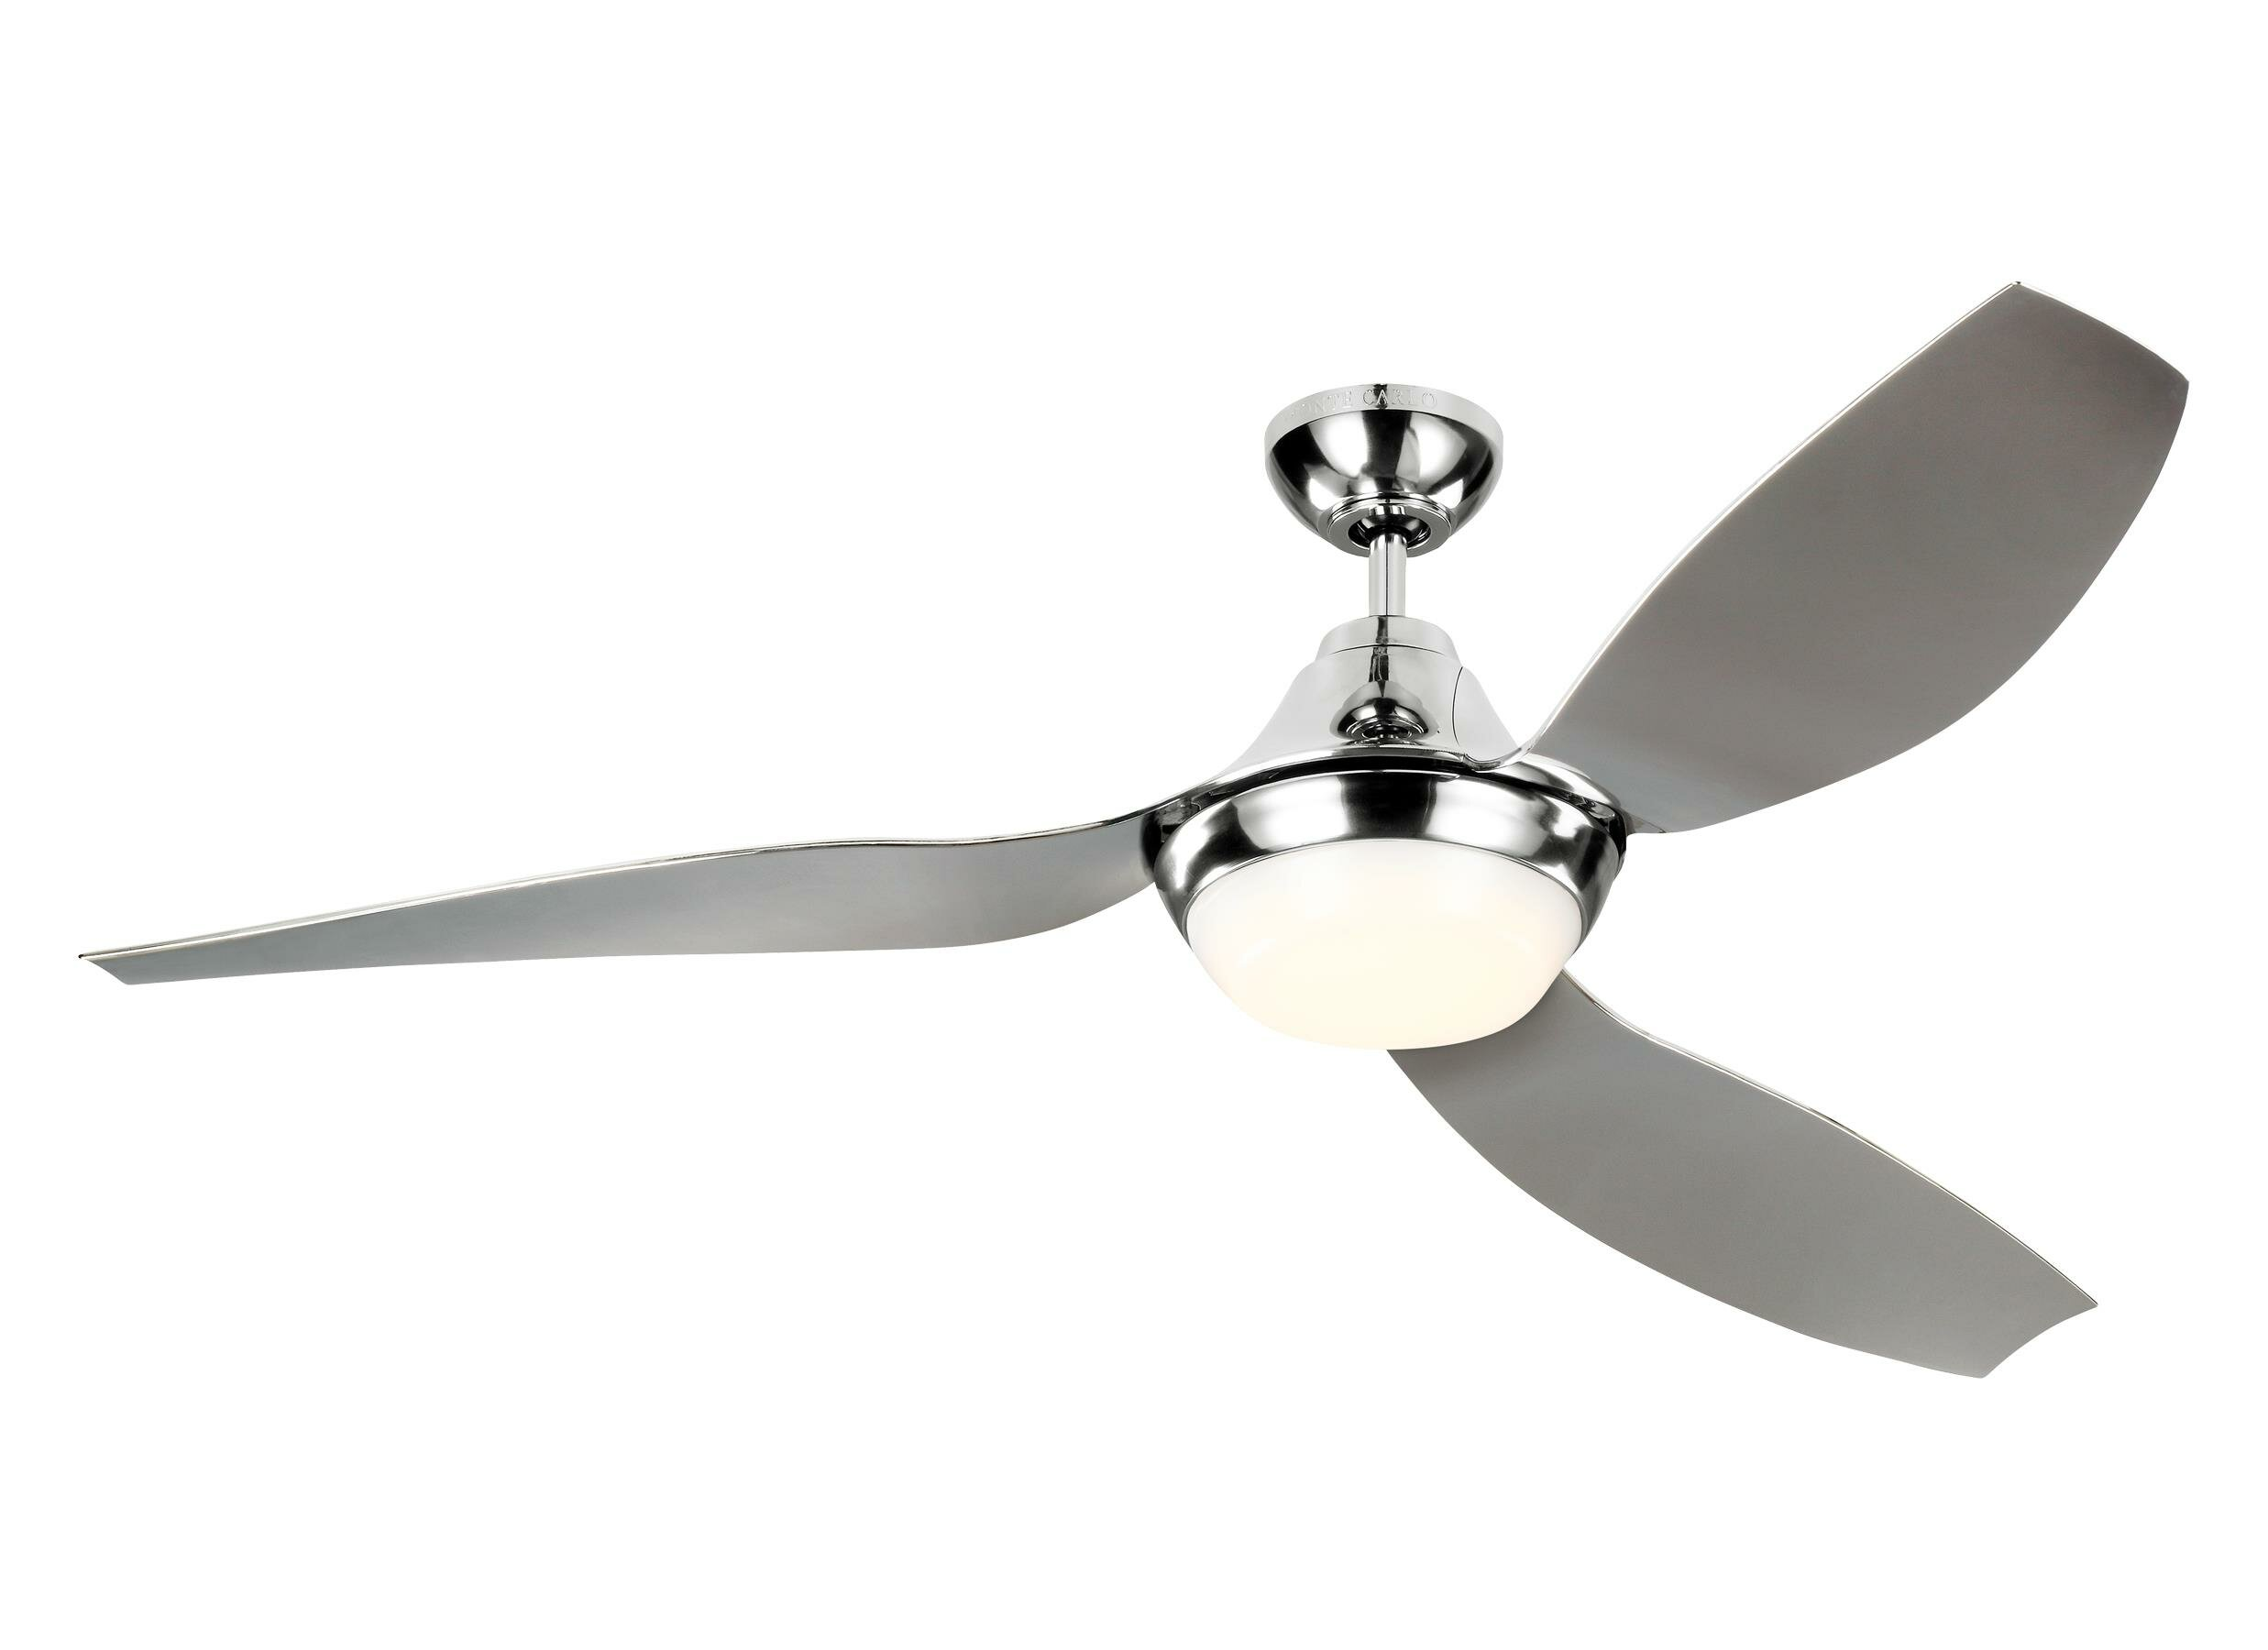 Monte Carlo Fan Company 56 3 Blade Led Propeller Ceiling Fan With Light Kit Included Perigold